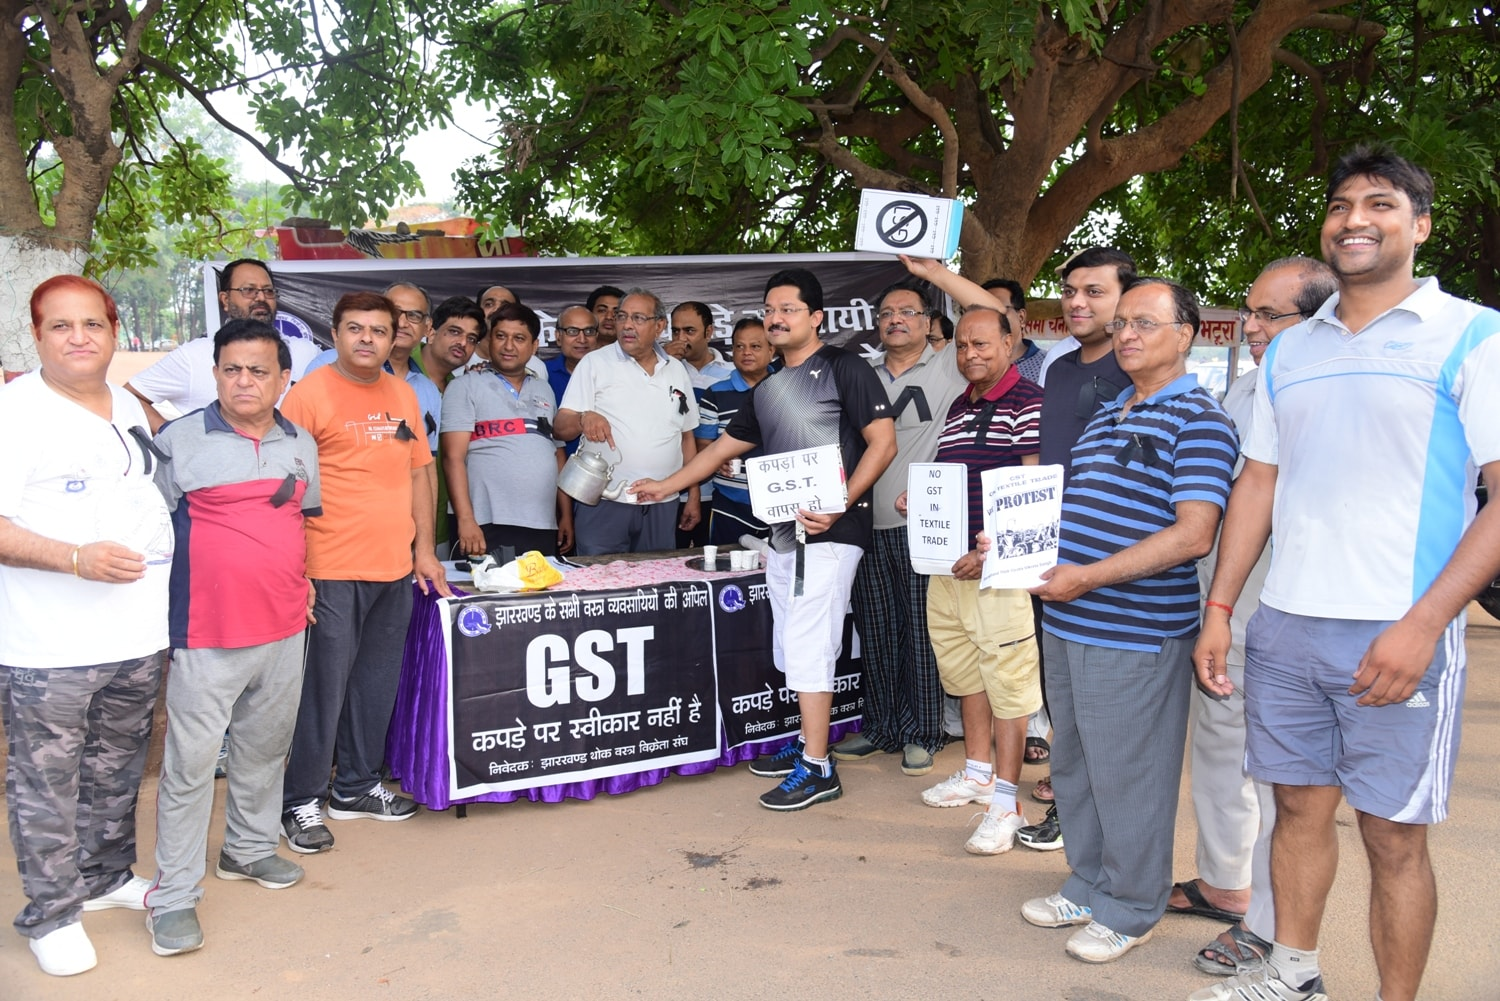 <p>Jharkhand Thok Vikreta Sangh members held &#39;Chai Par Charcha&#39;(Discussion over a cup of tea) to mark their protest against GST slated to be enforced on July 1,2017.</p>